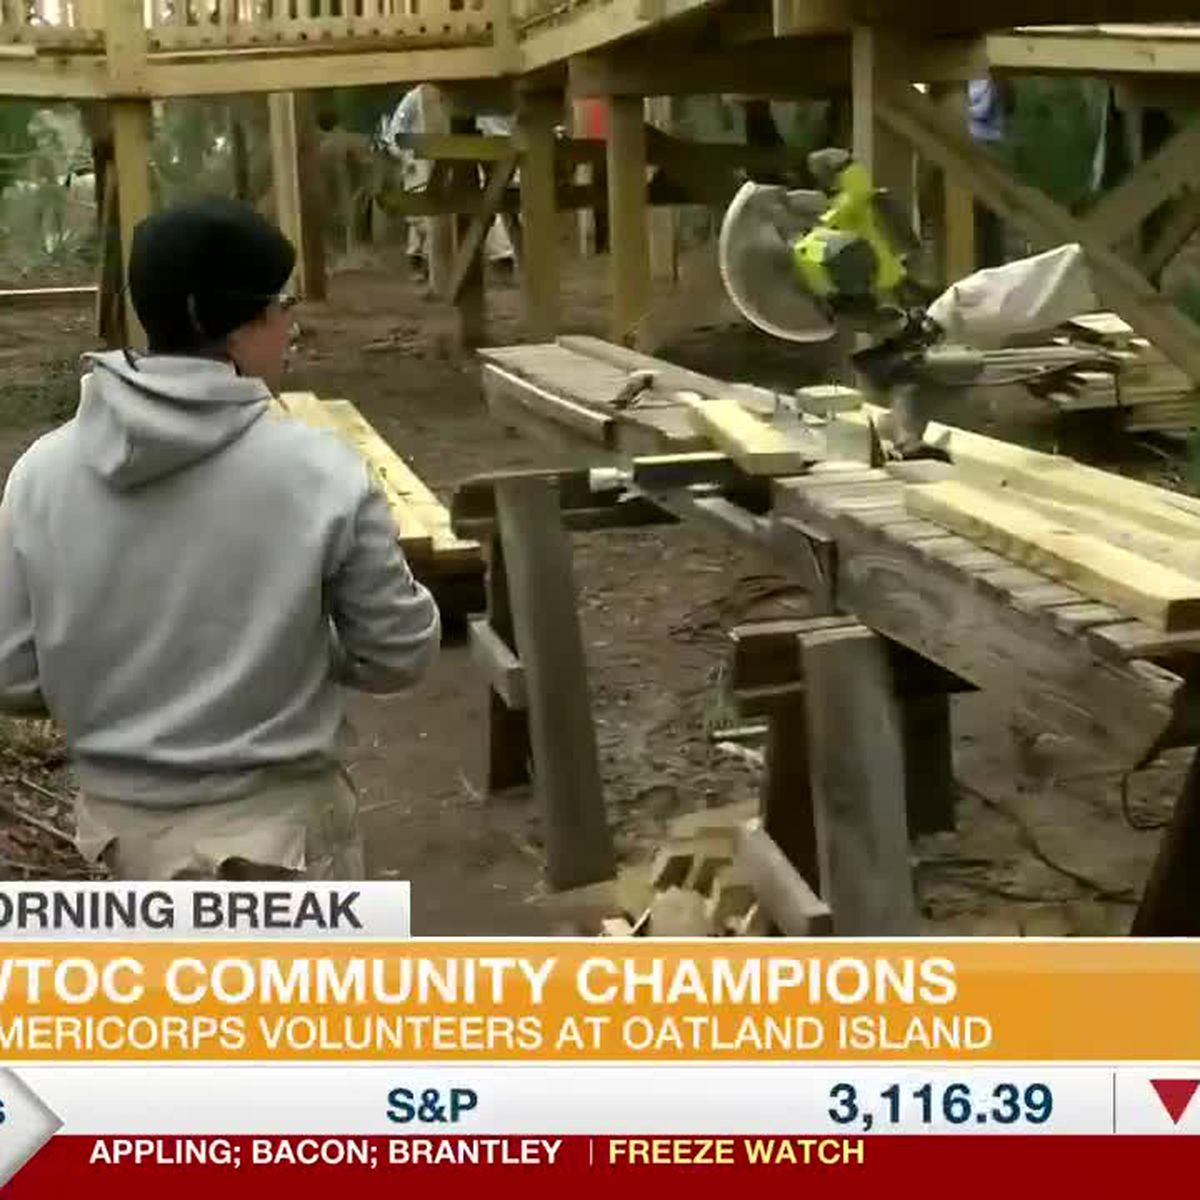 WTOC Community Champions: Americorps volunteers at Oatland Island